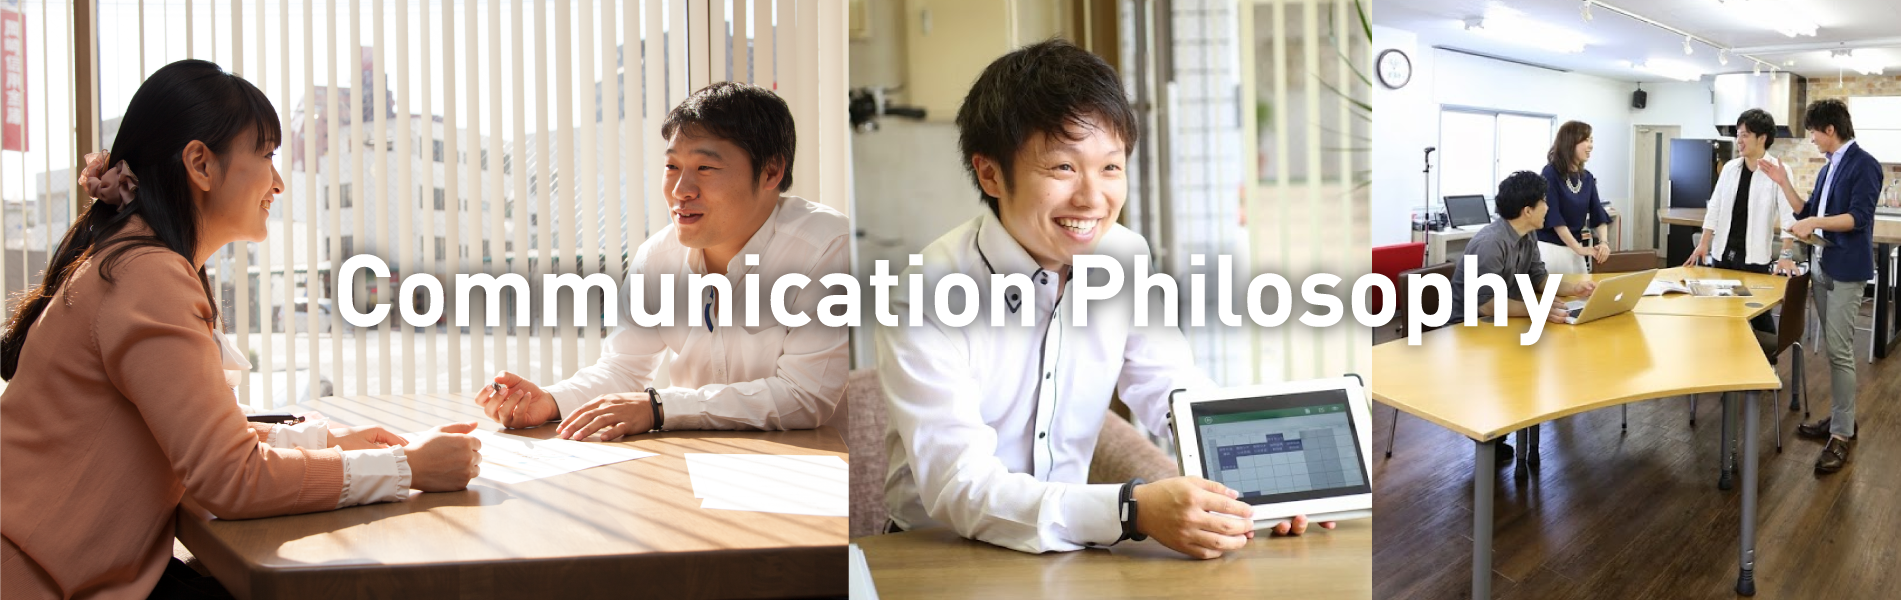 IS Communication Philosophy